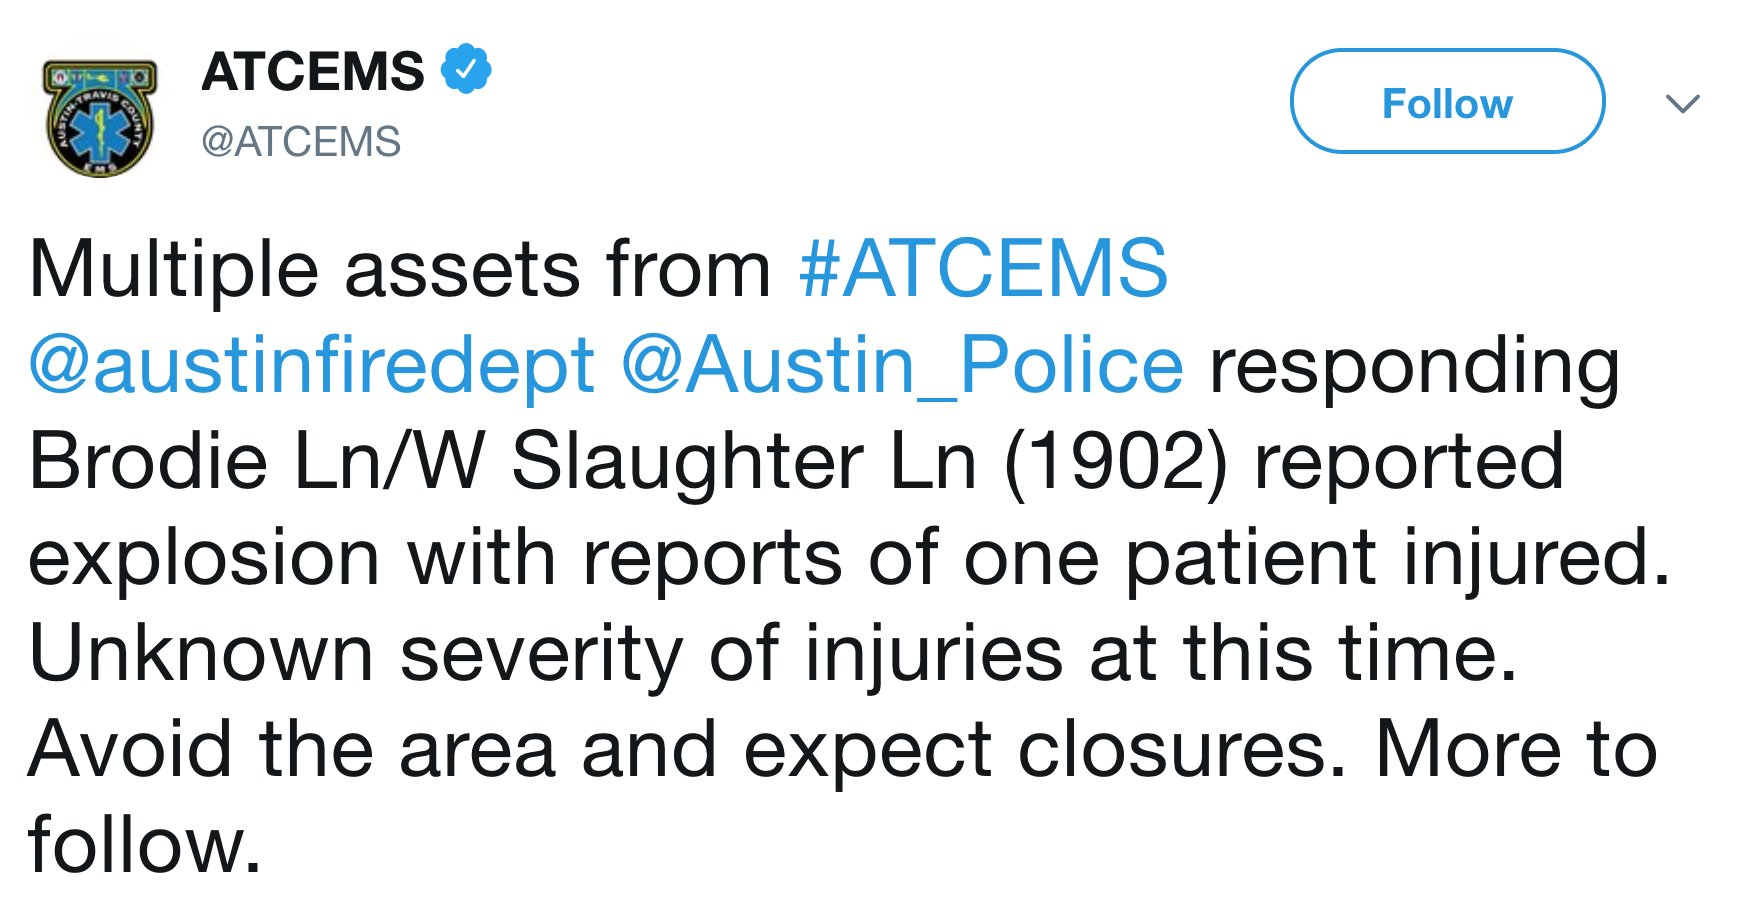 JUST IN: Authorities in Austin responding to reports of another explosion. https://t.co/mn2SdvtEbN https://t.co/XC37g1BsLu